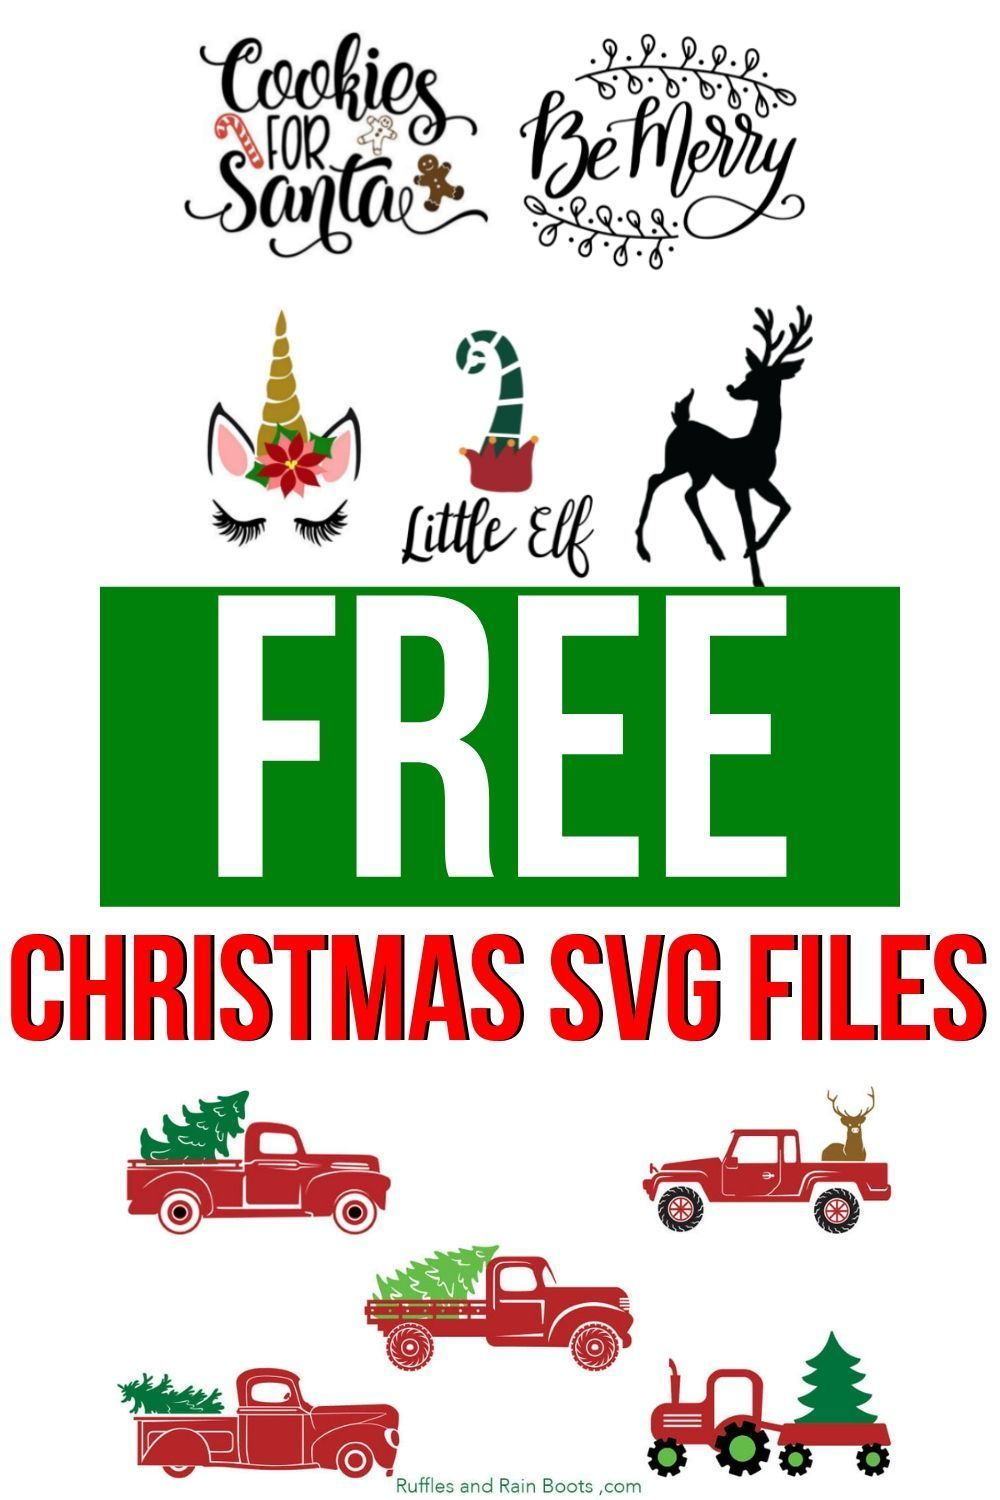 Get These Free SVG Files for Christmas Gifts and C